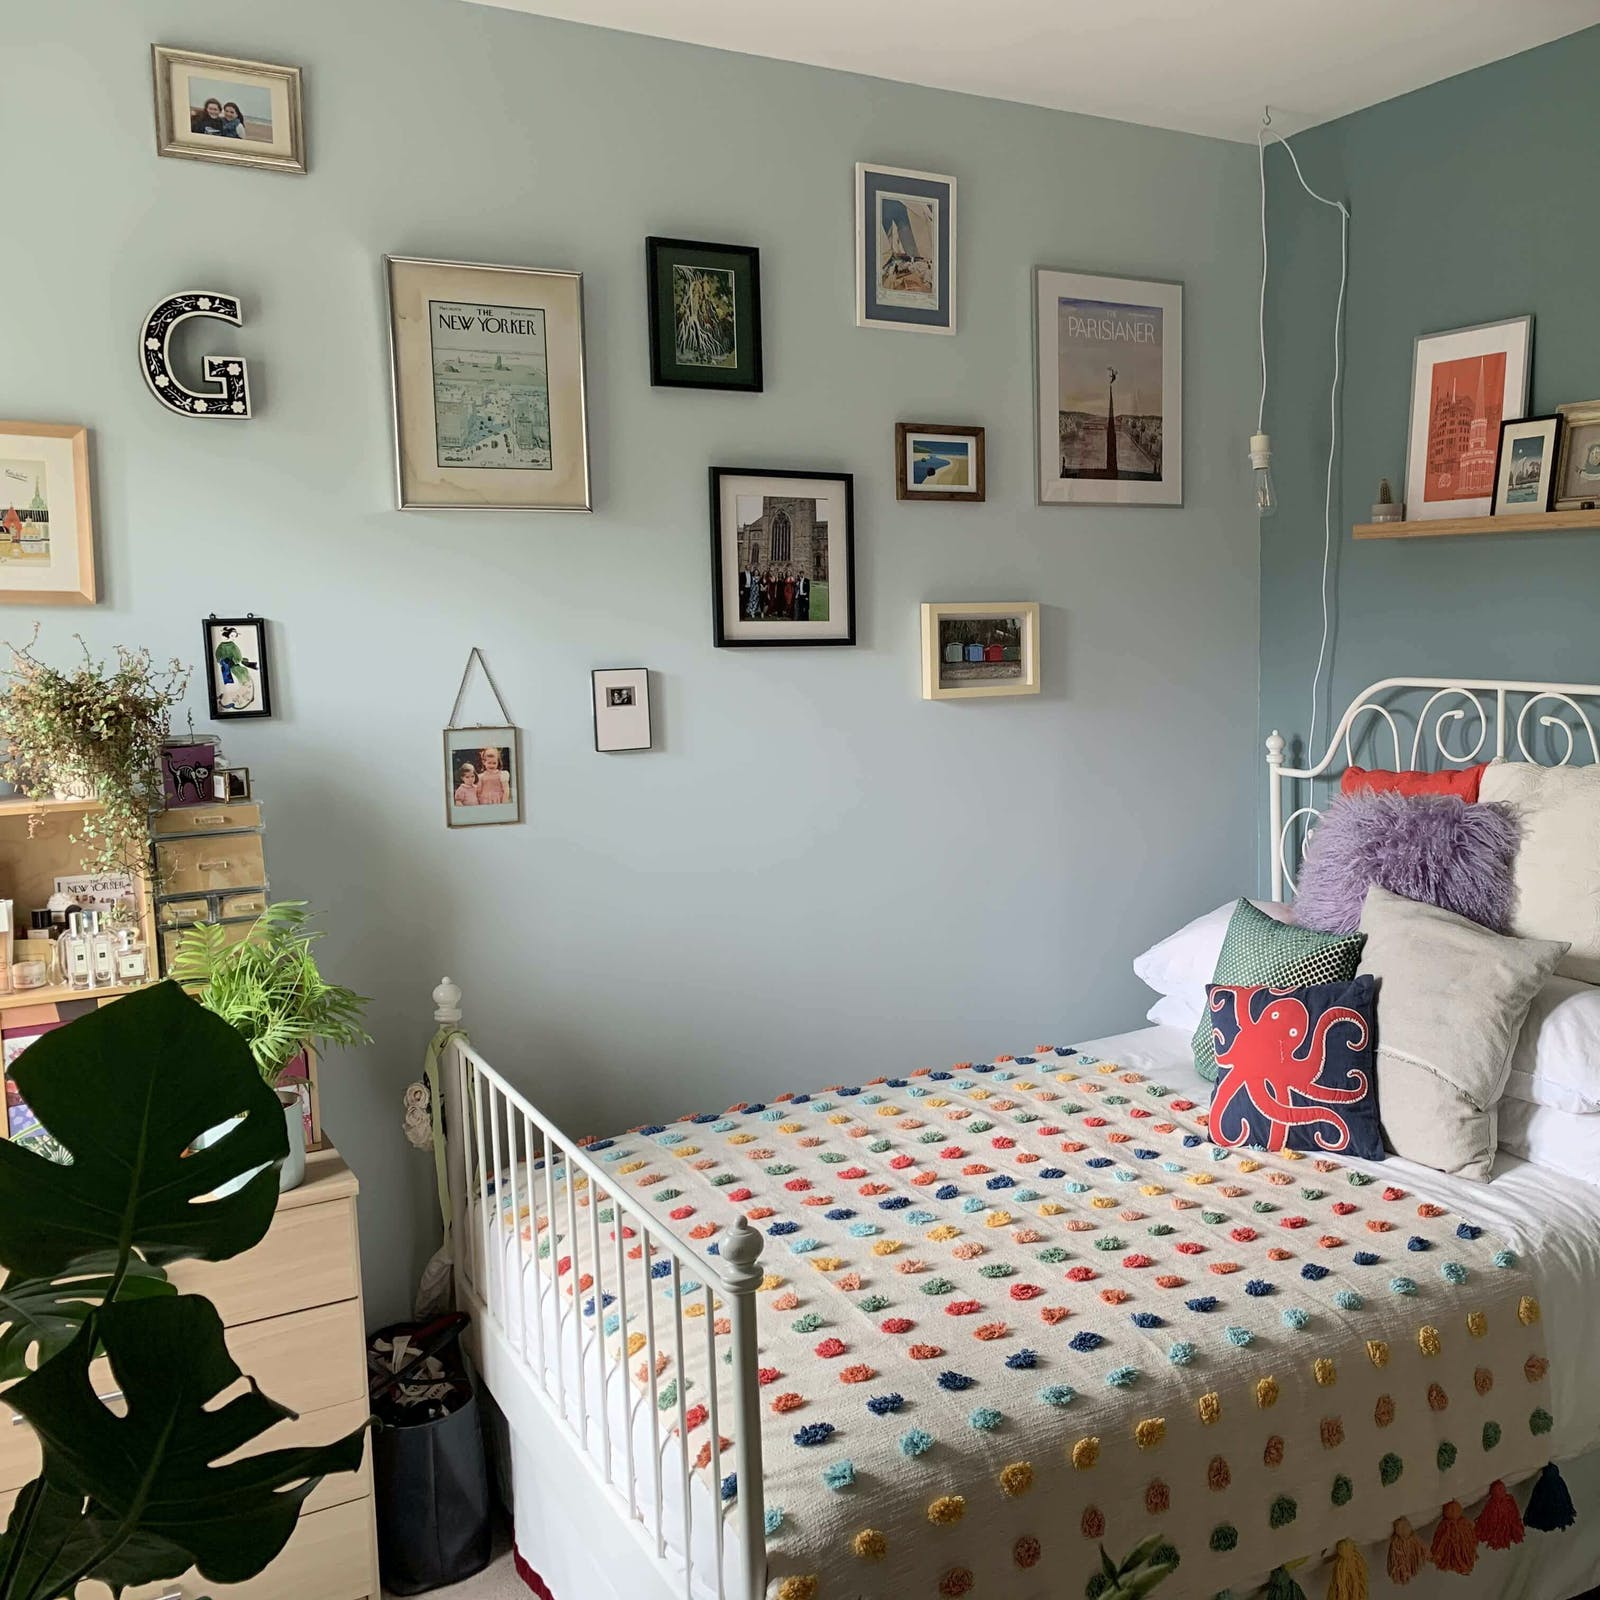 Small bedroom painted in Lick Blue 01 and Teal 01